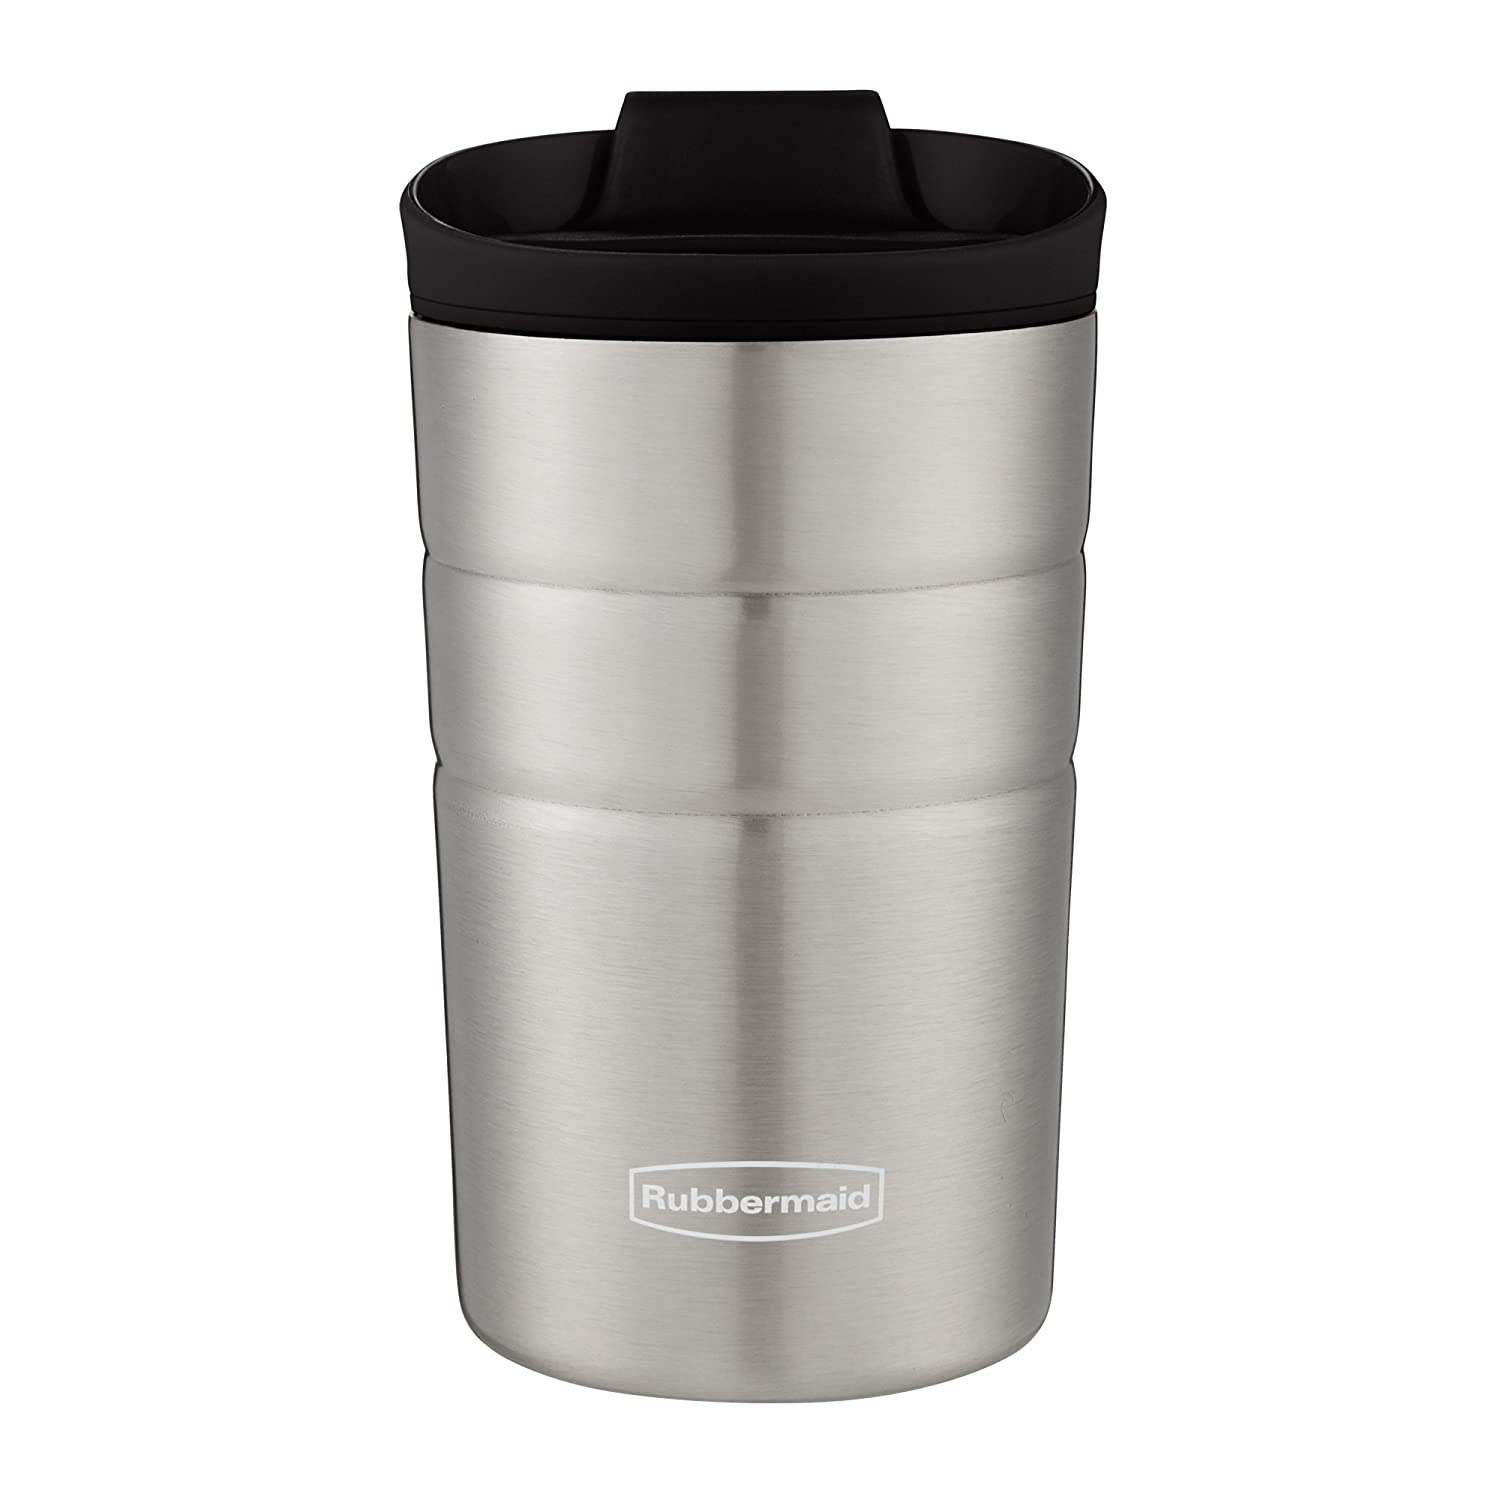 Rubbermaid Leak Proof Flip Lid Thermal Bottle, 10 oz., Black